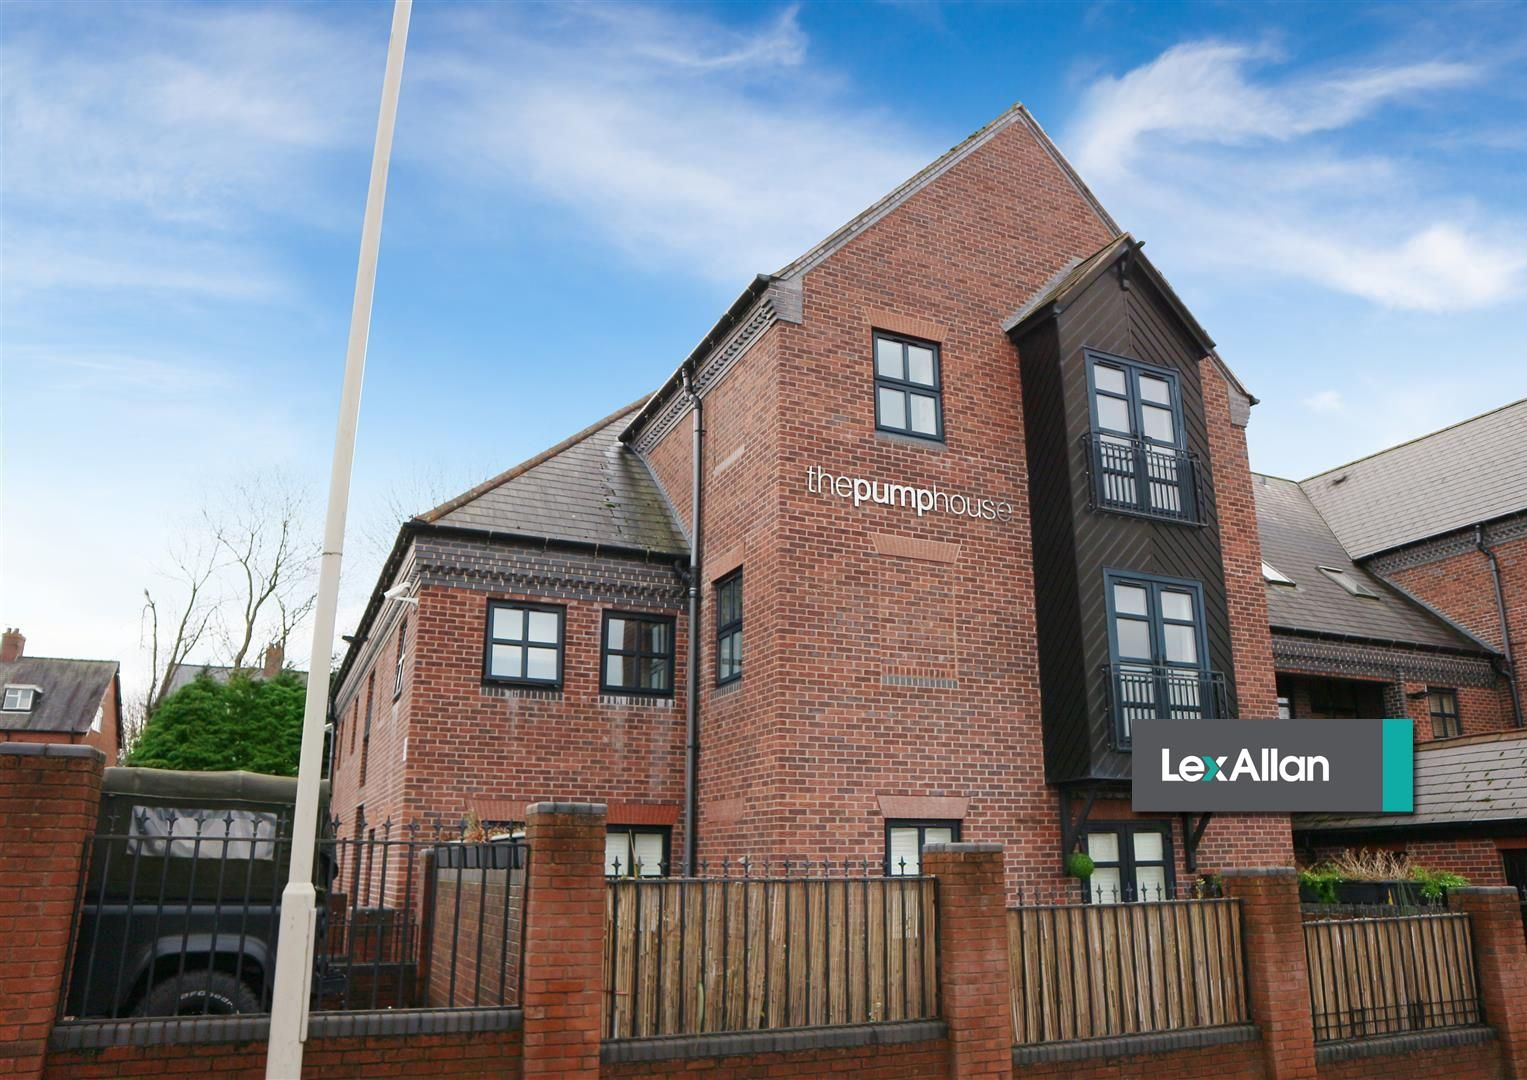 1 bed flat for sale, DY9